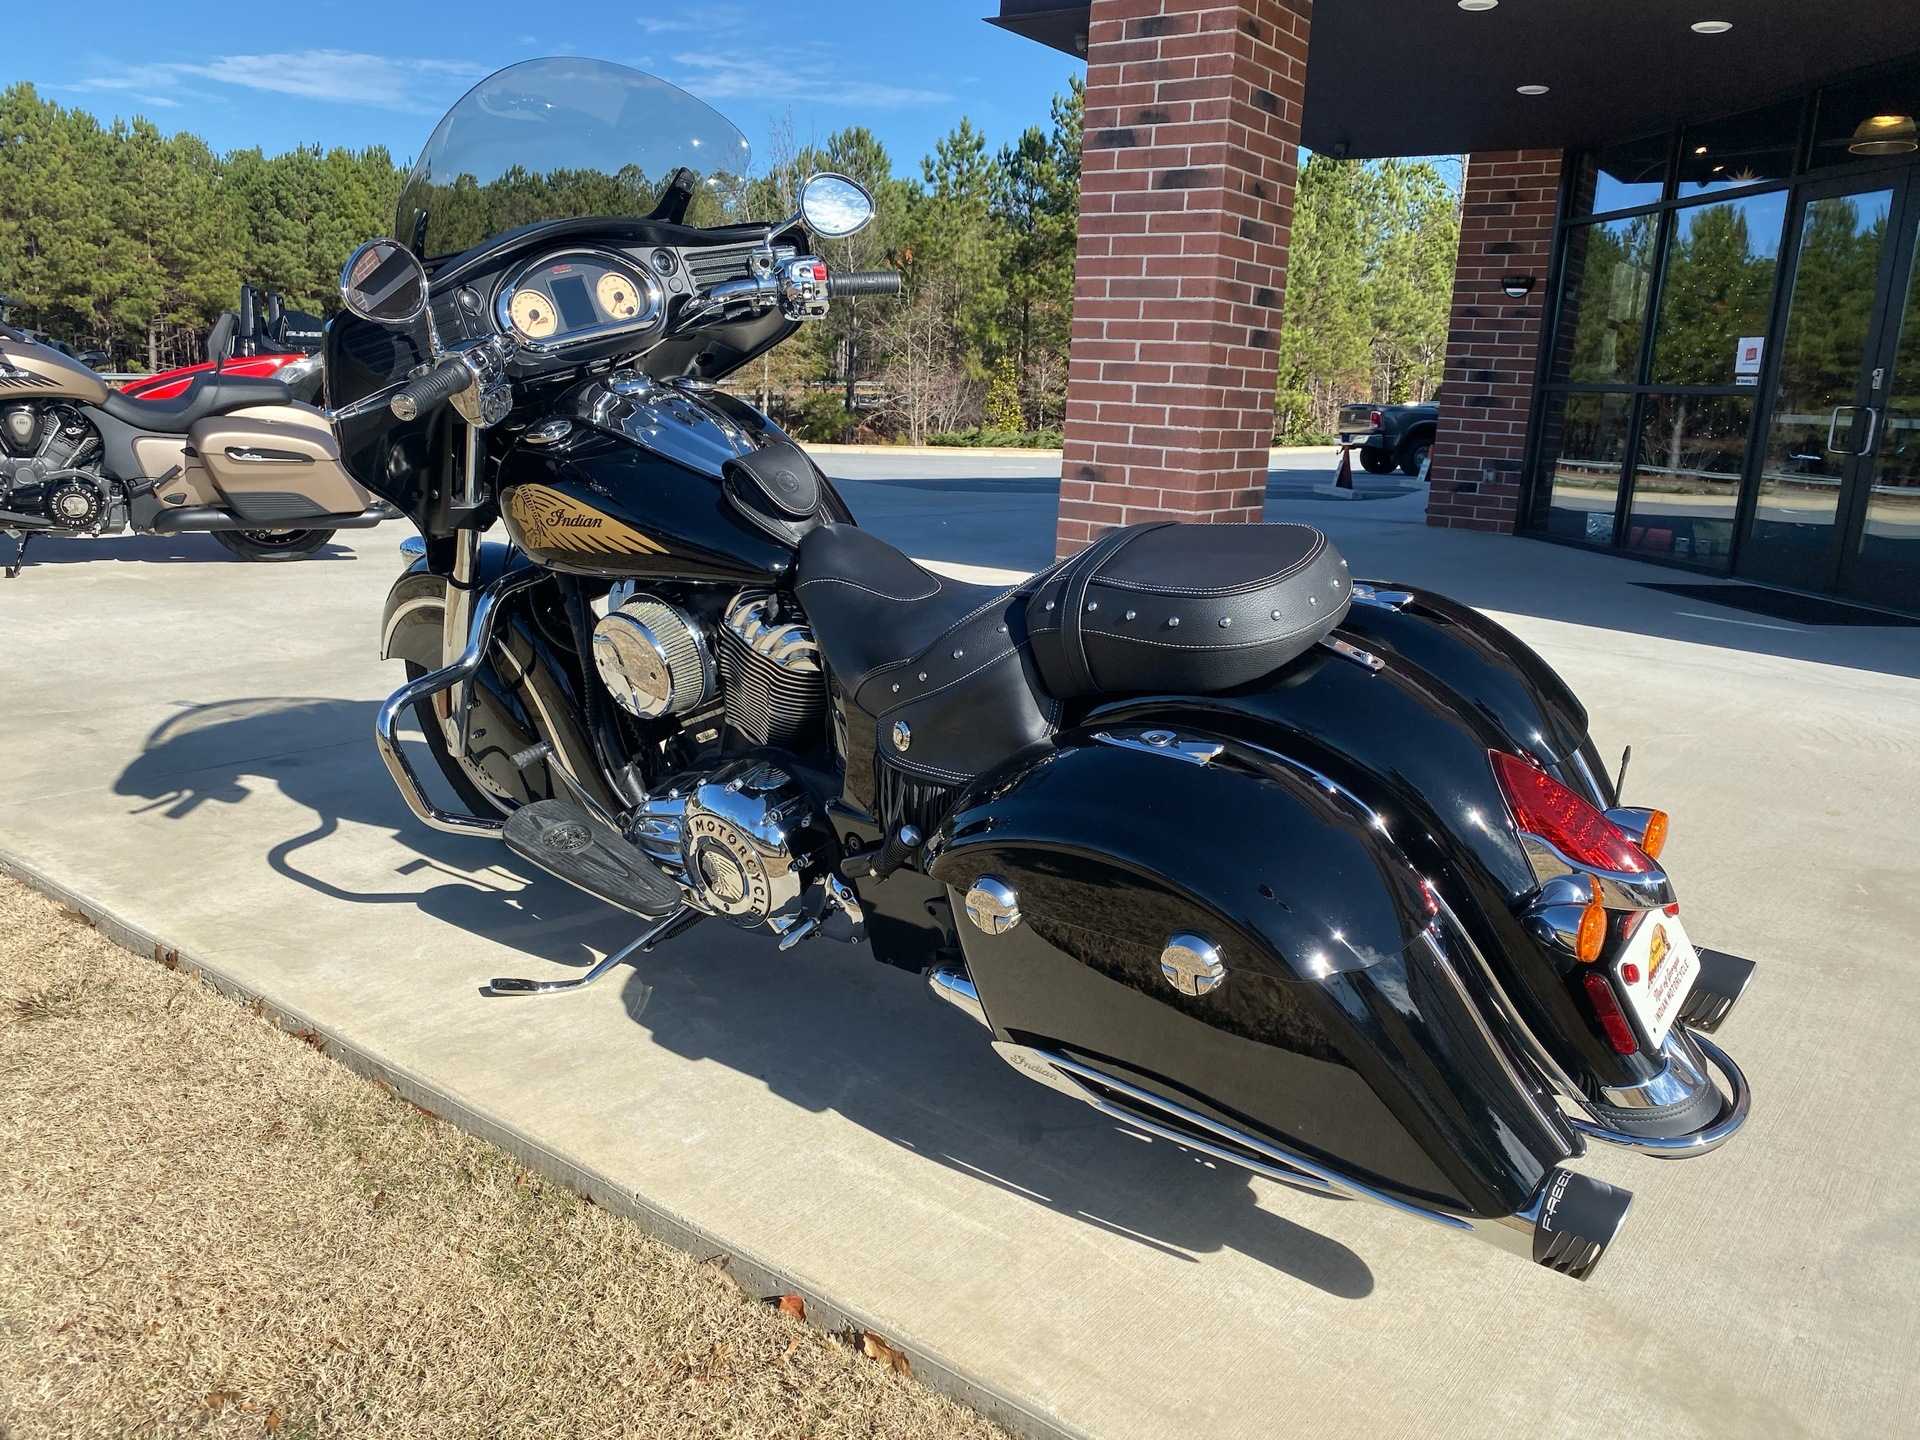 2014 Indian Chieftain™ in Buford, Georgia - Photo 2